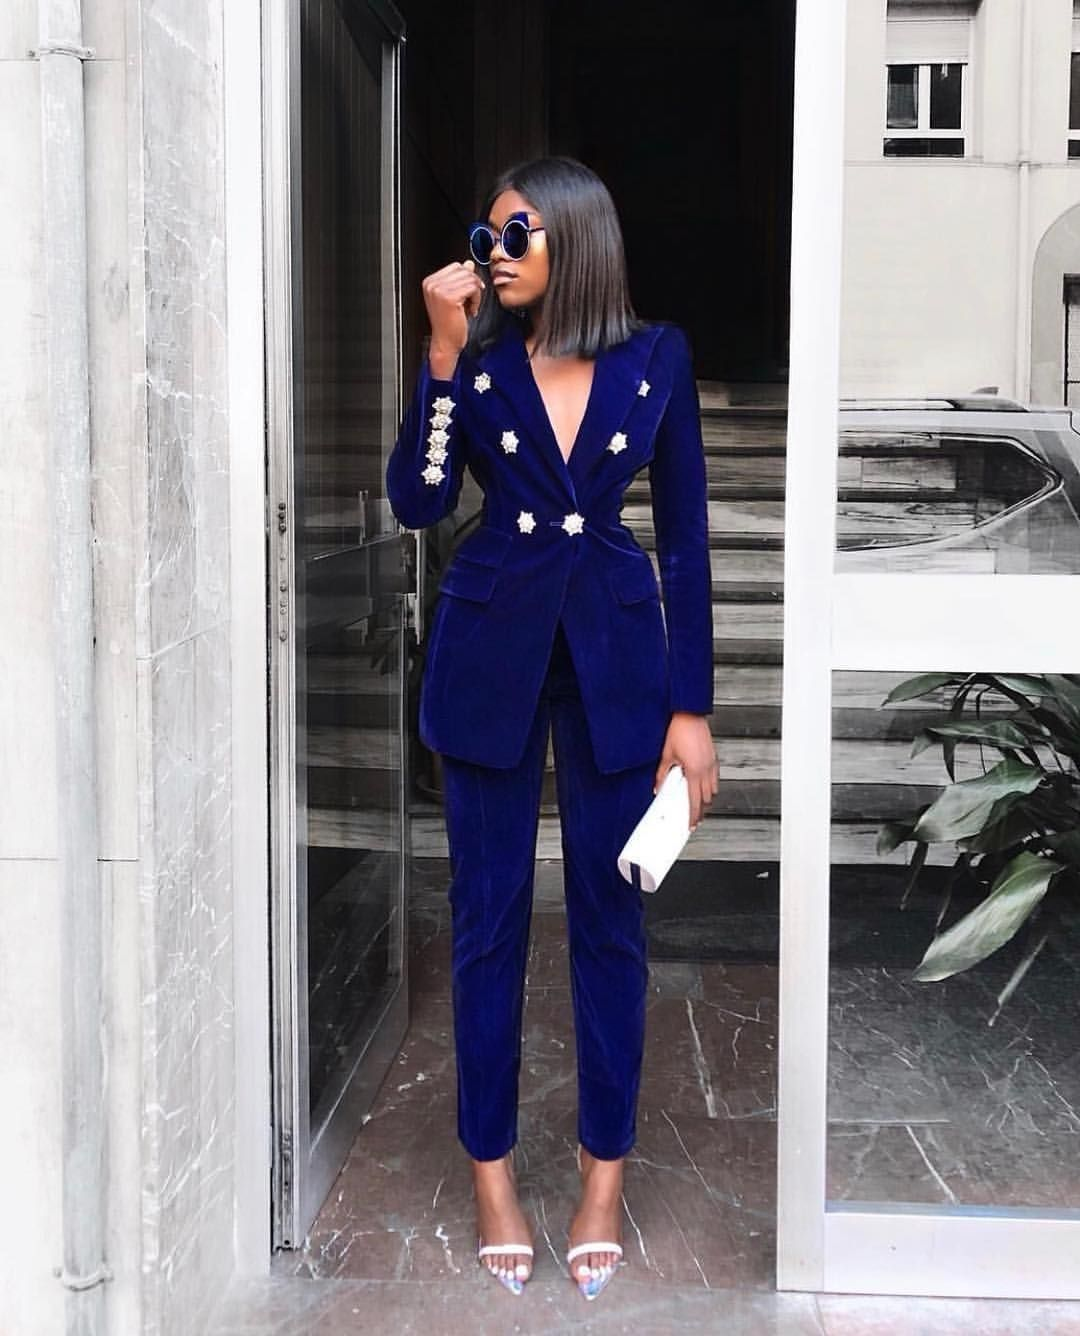 Pant Suits Tailored Sets And Colourful Coordinates For Women Mammypi Woman Suit Fashion Fashion Pant Suits For Women [ 1336 x 1080 Pixel ]